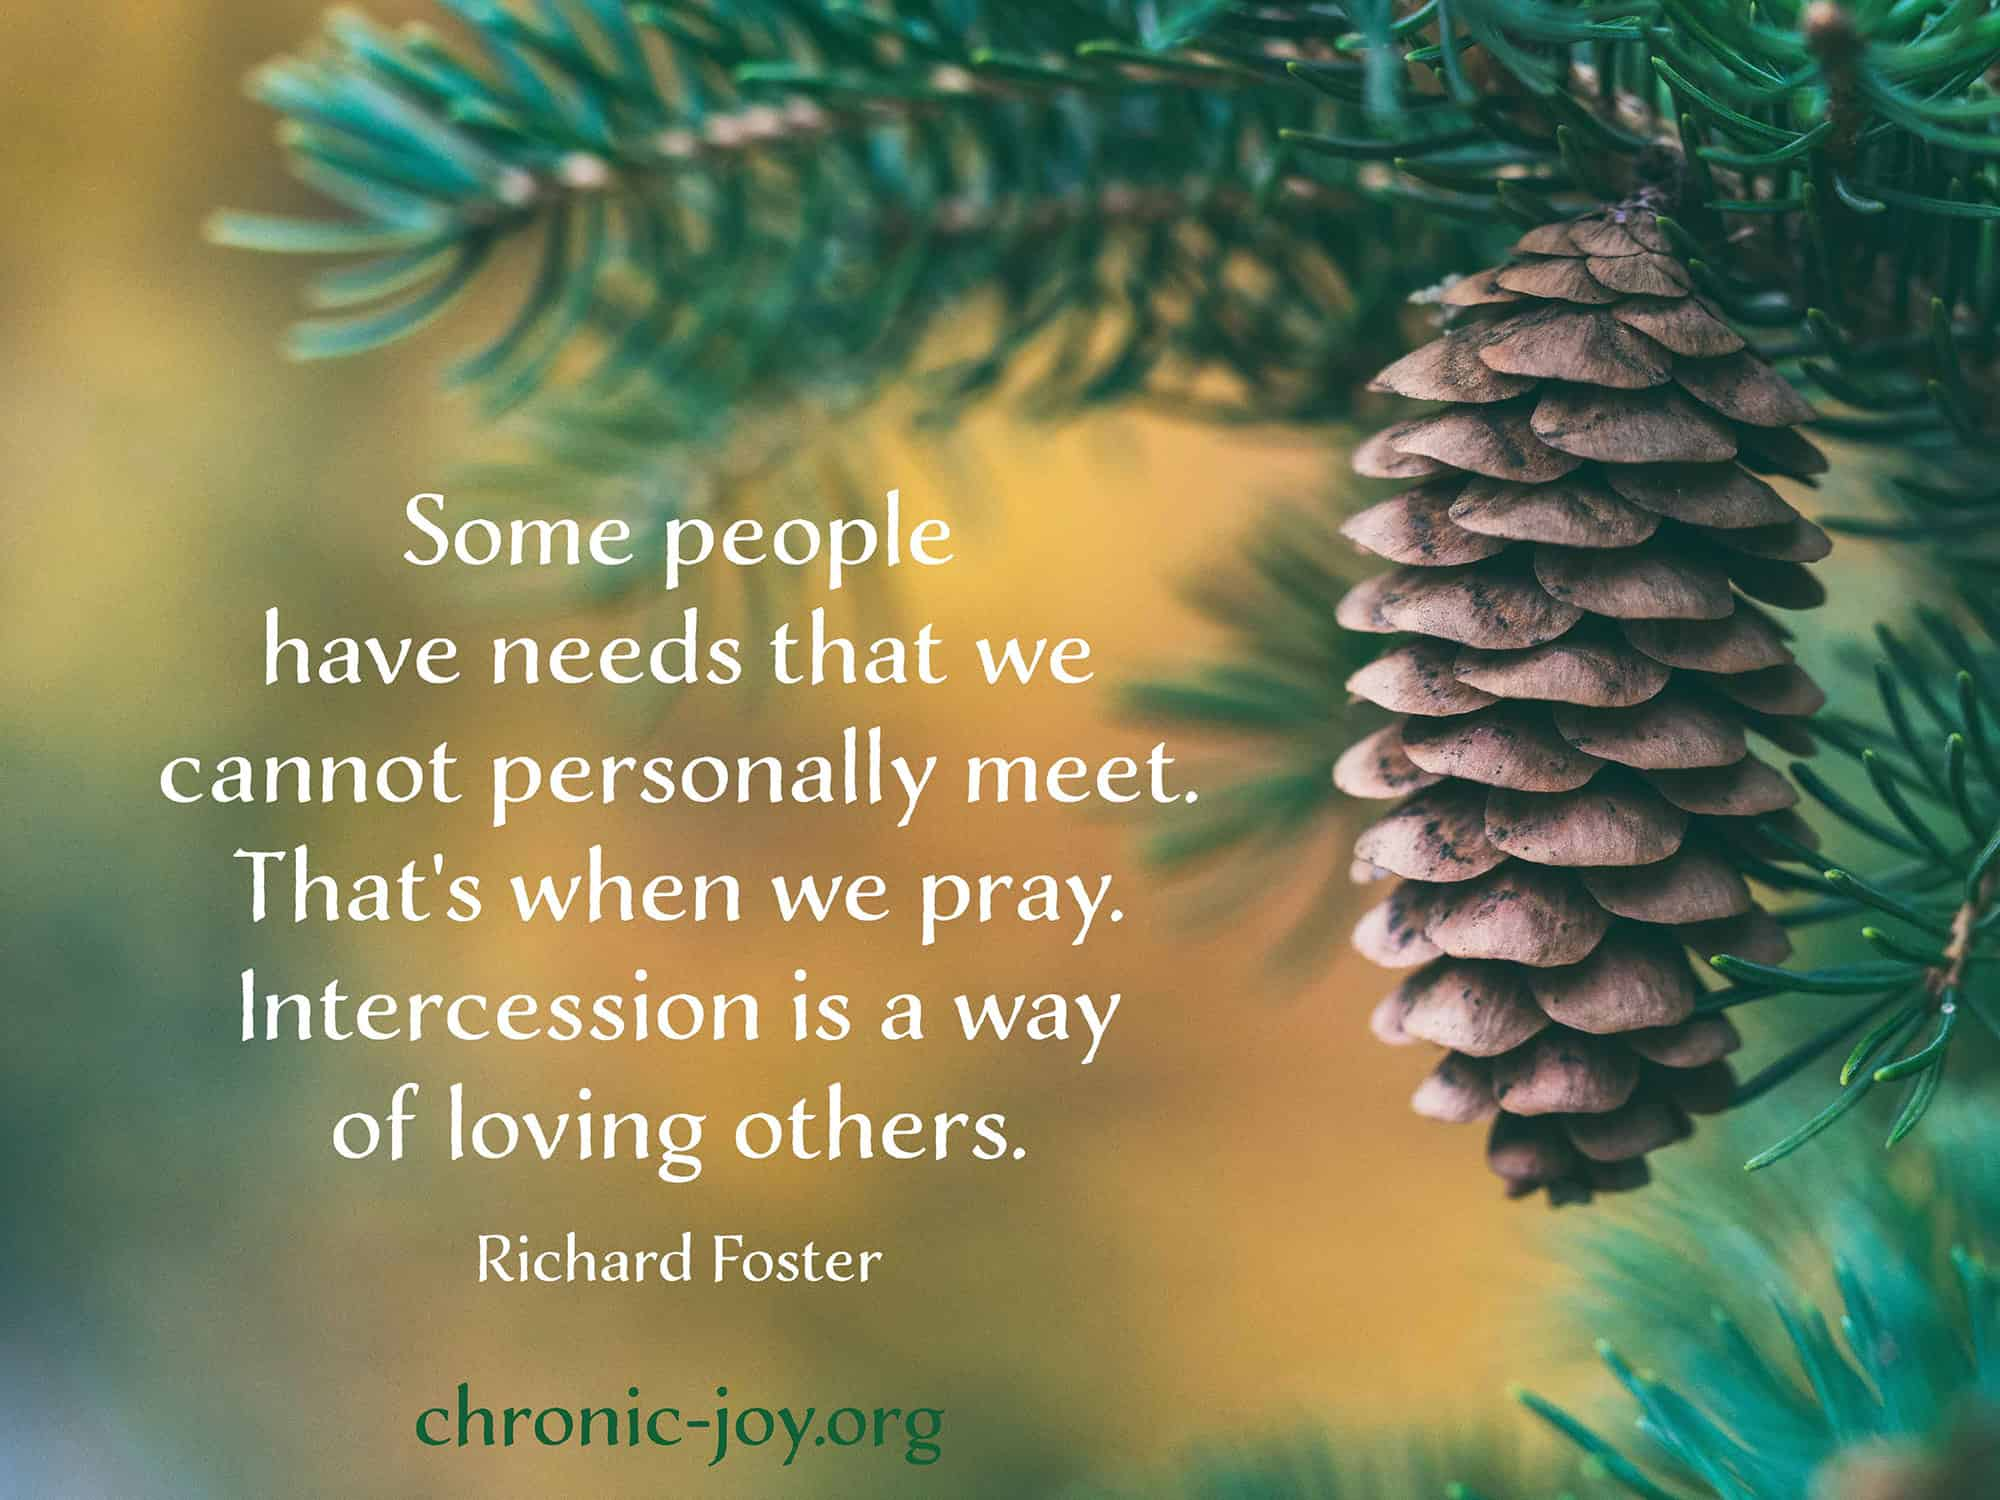 Intercession is a way of loving others.